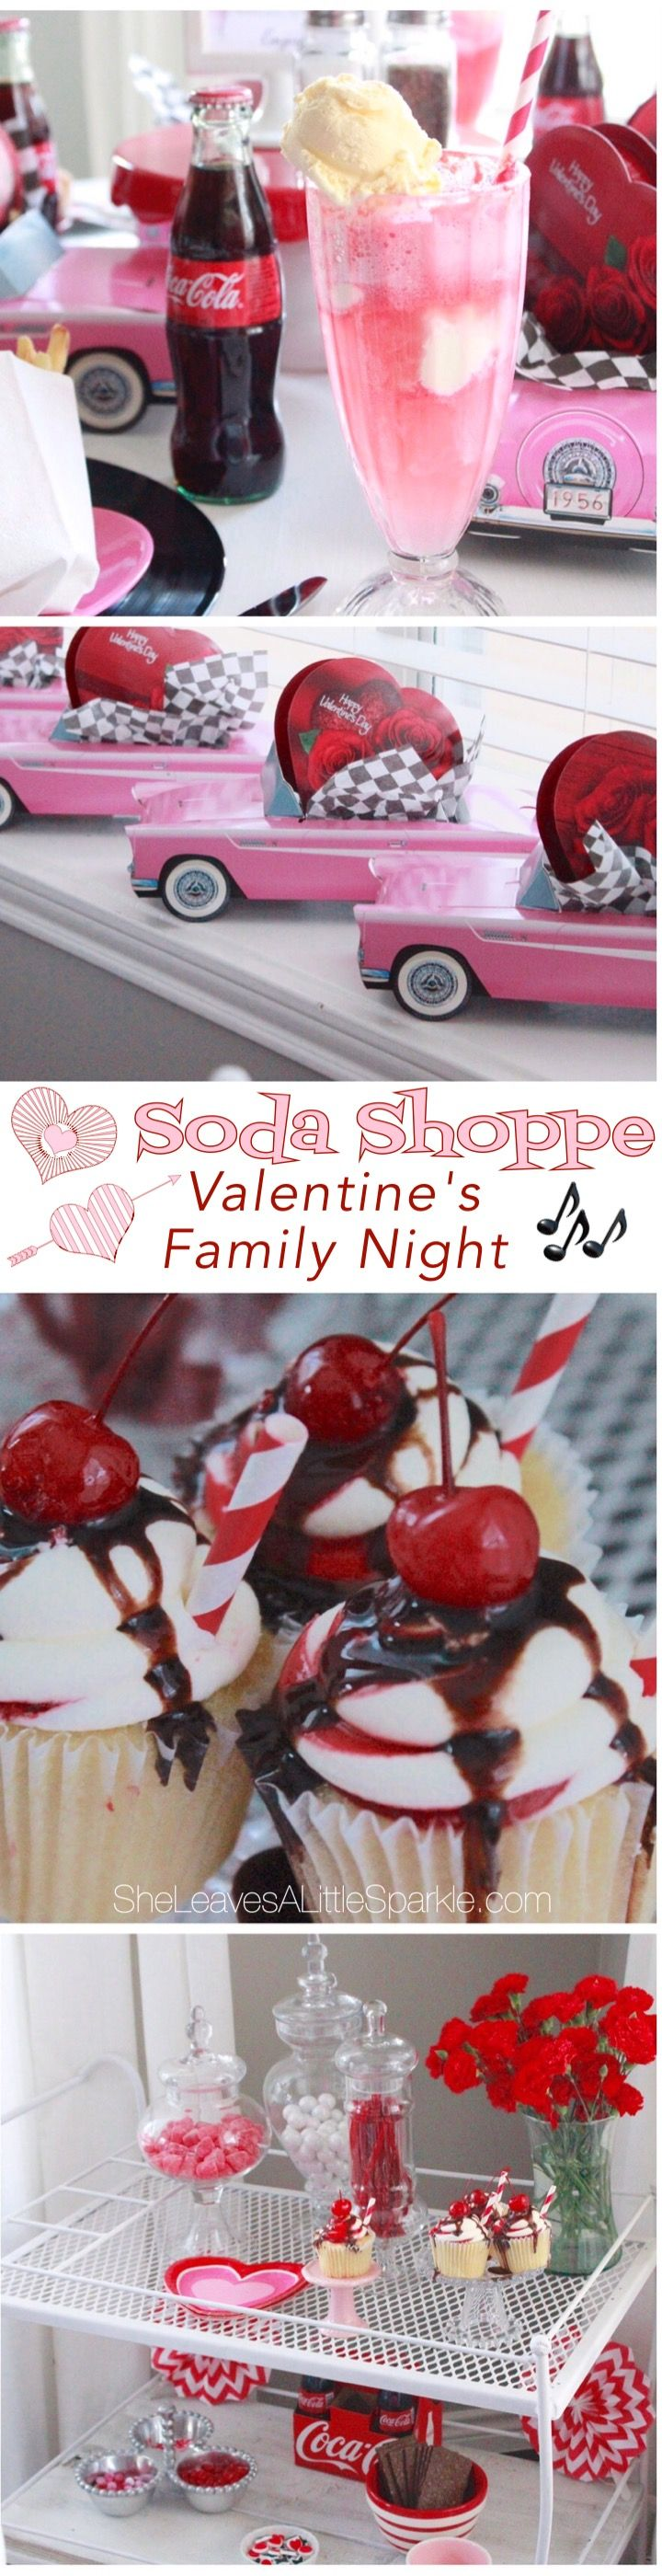 "Soda Shoppe Valentine's Family Night! Come see a fun idea we had to celebrate Valentine's Day with our kids...including 50's playlist for our sock hop AND we made ""love shacks""."